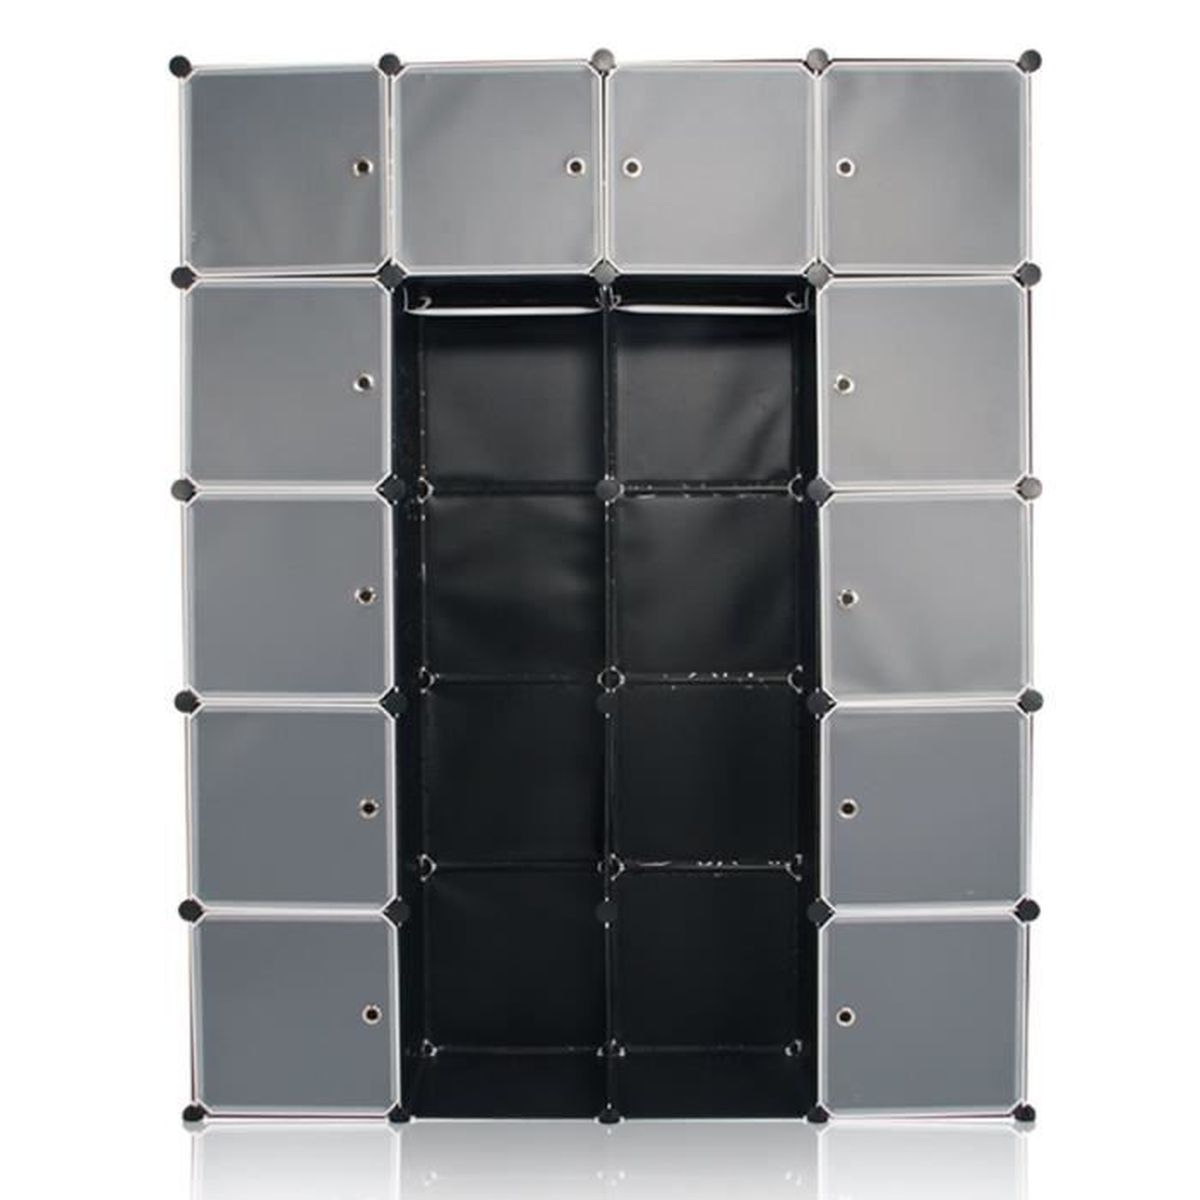 sungle diy armoire plastique noir tag re plastique meuble rangement plasmatique penderie. Black Bedroom Furniture Sets. Home Design Ideas